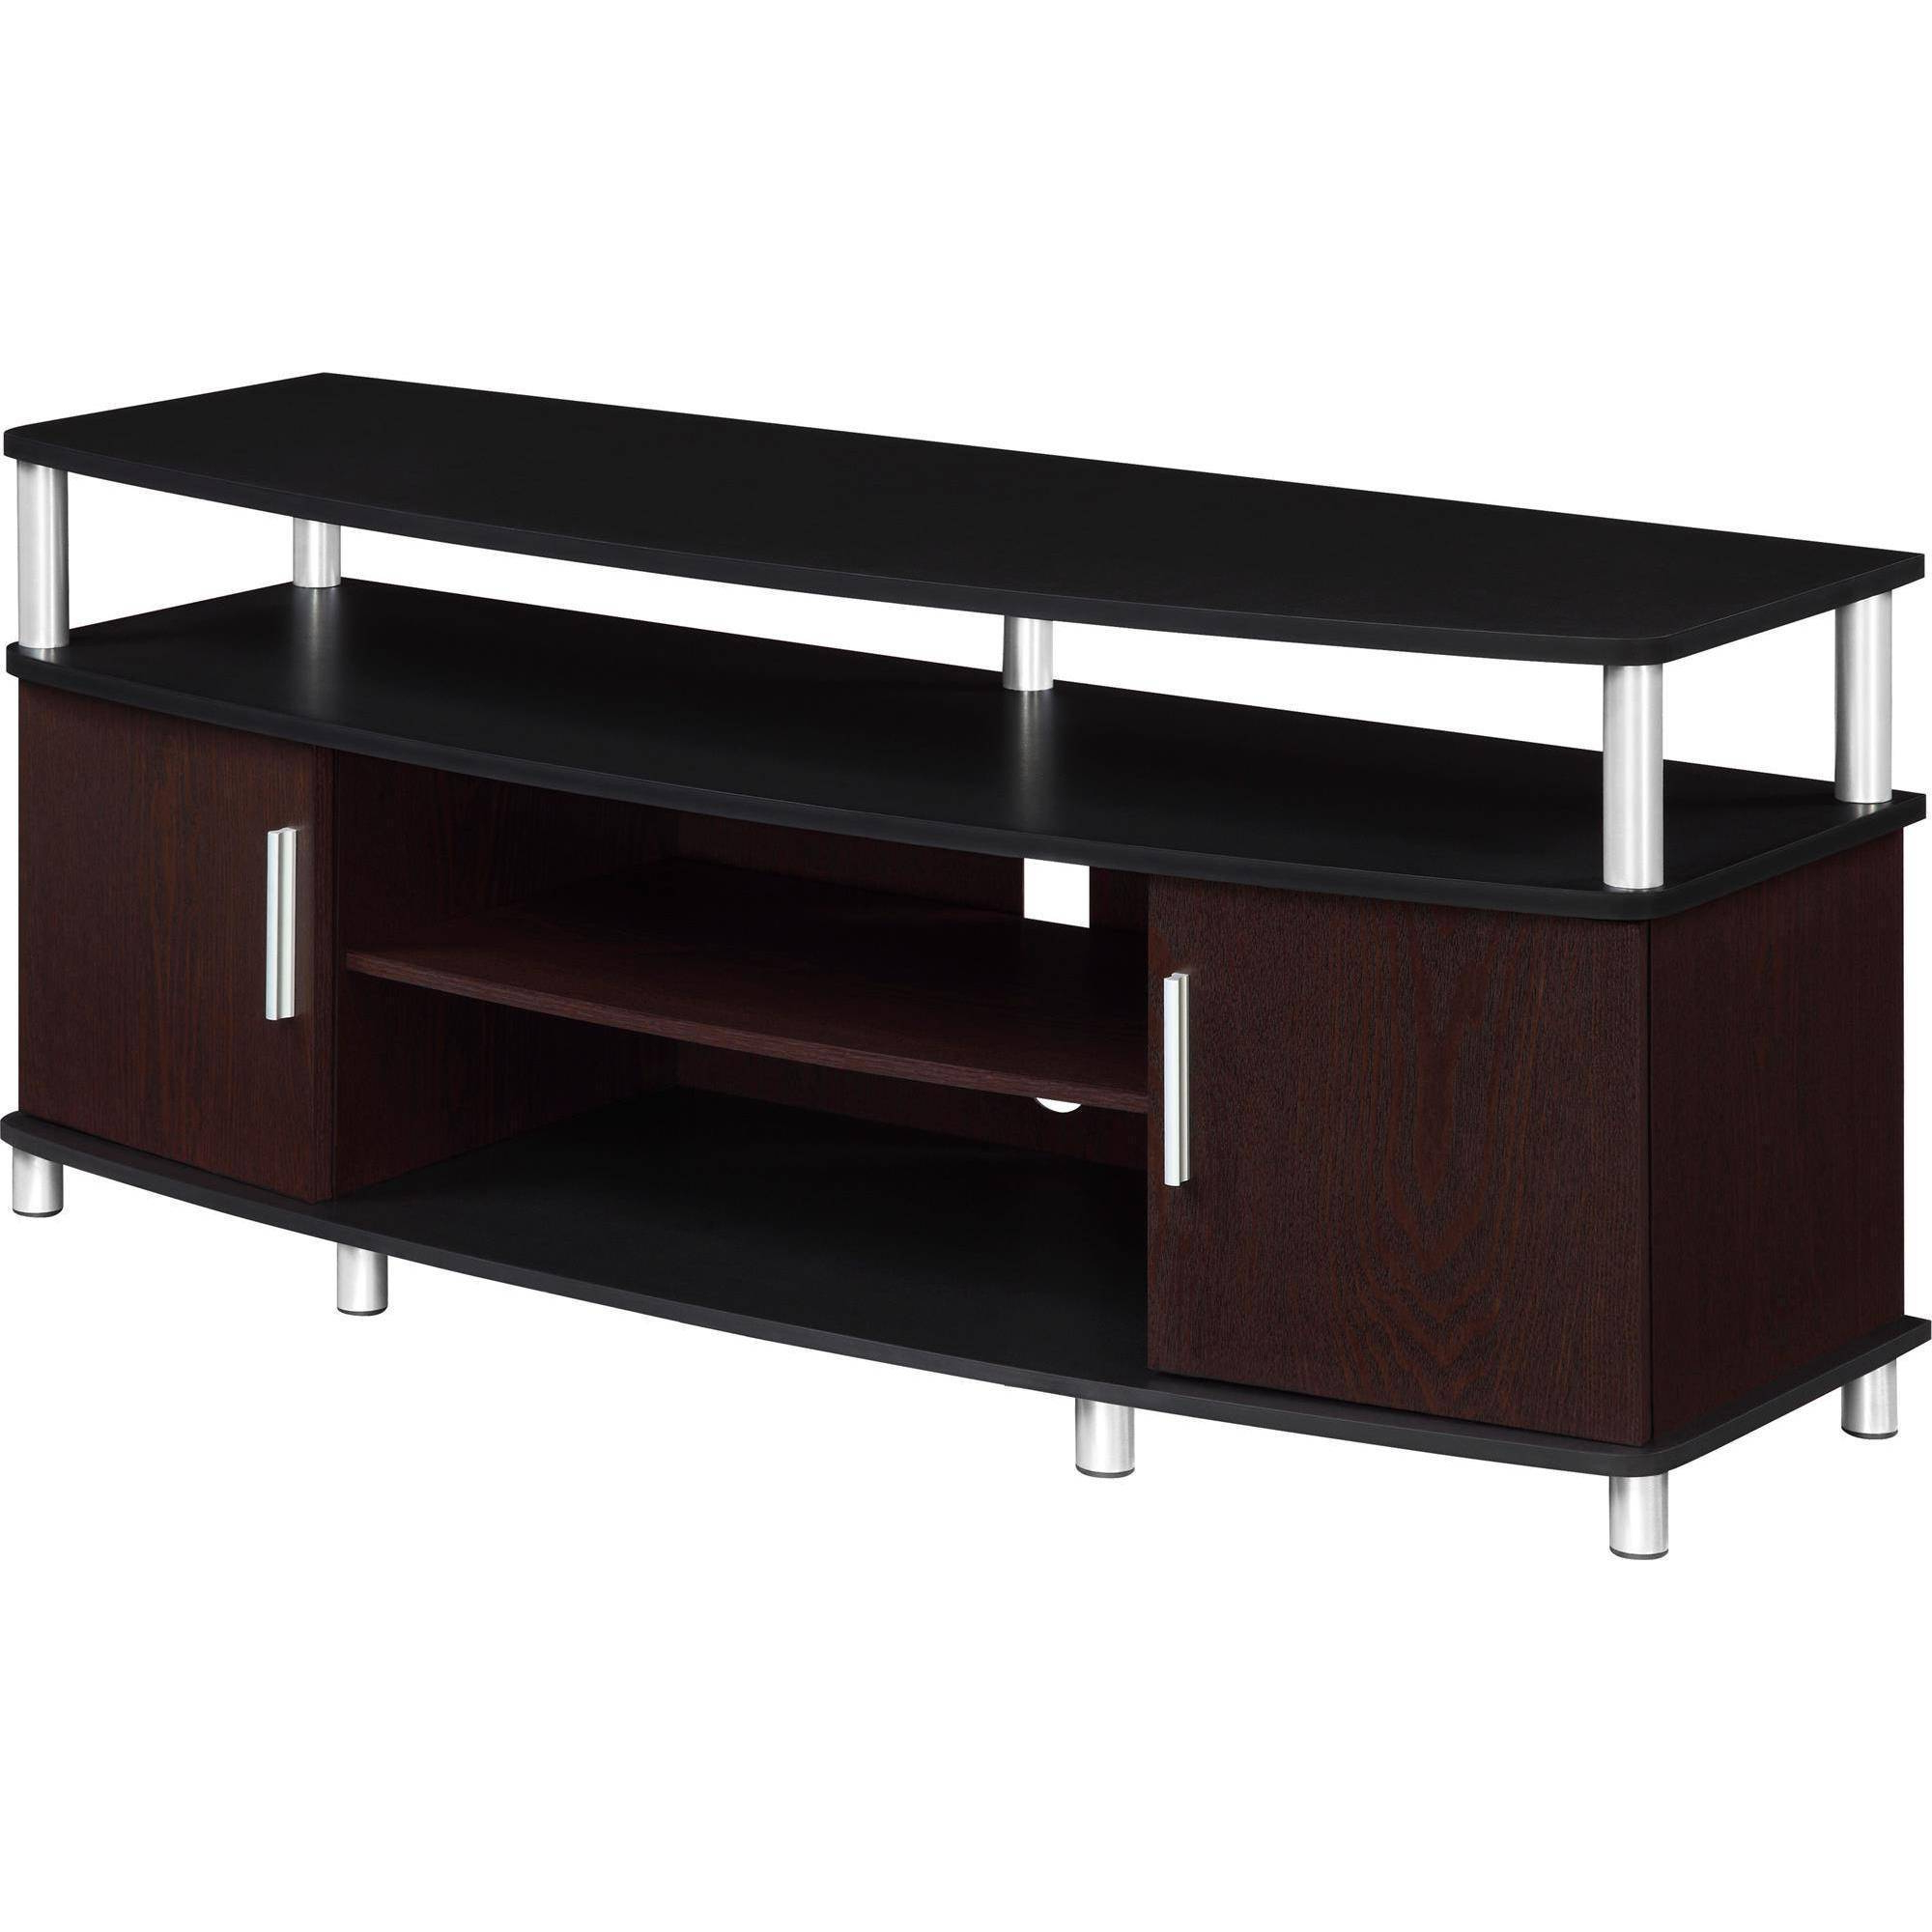 "Carson Tv Stand, For Tvs Up To 50"", Multiple Finishes – Walmart Regarding Recent Tv Stands With Drawers And Shelves (View 10 of 20)"